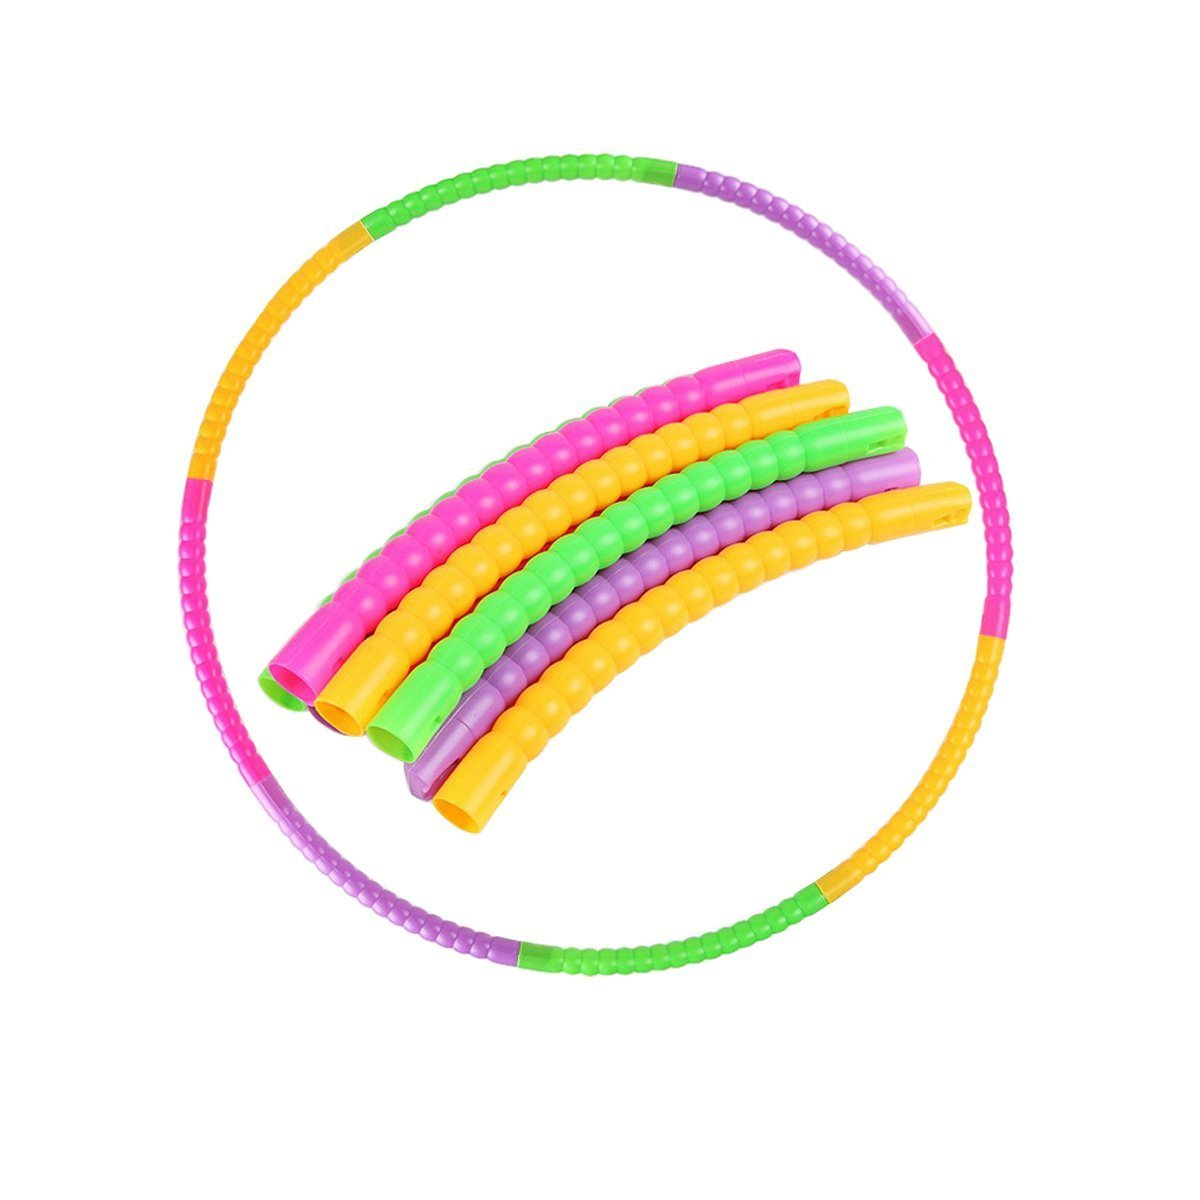 eBelken Kids Hula Hoop for Children's Exercise Fitness Workout, Suitable for 3-8 years old Child's Sports and Playing Games, 8 Colorful Segments, Snap Together and Detachable, ABS Plastics (60cm) by eBelken